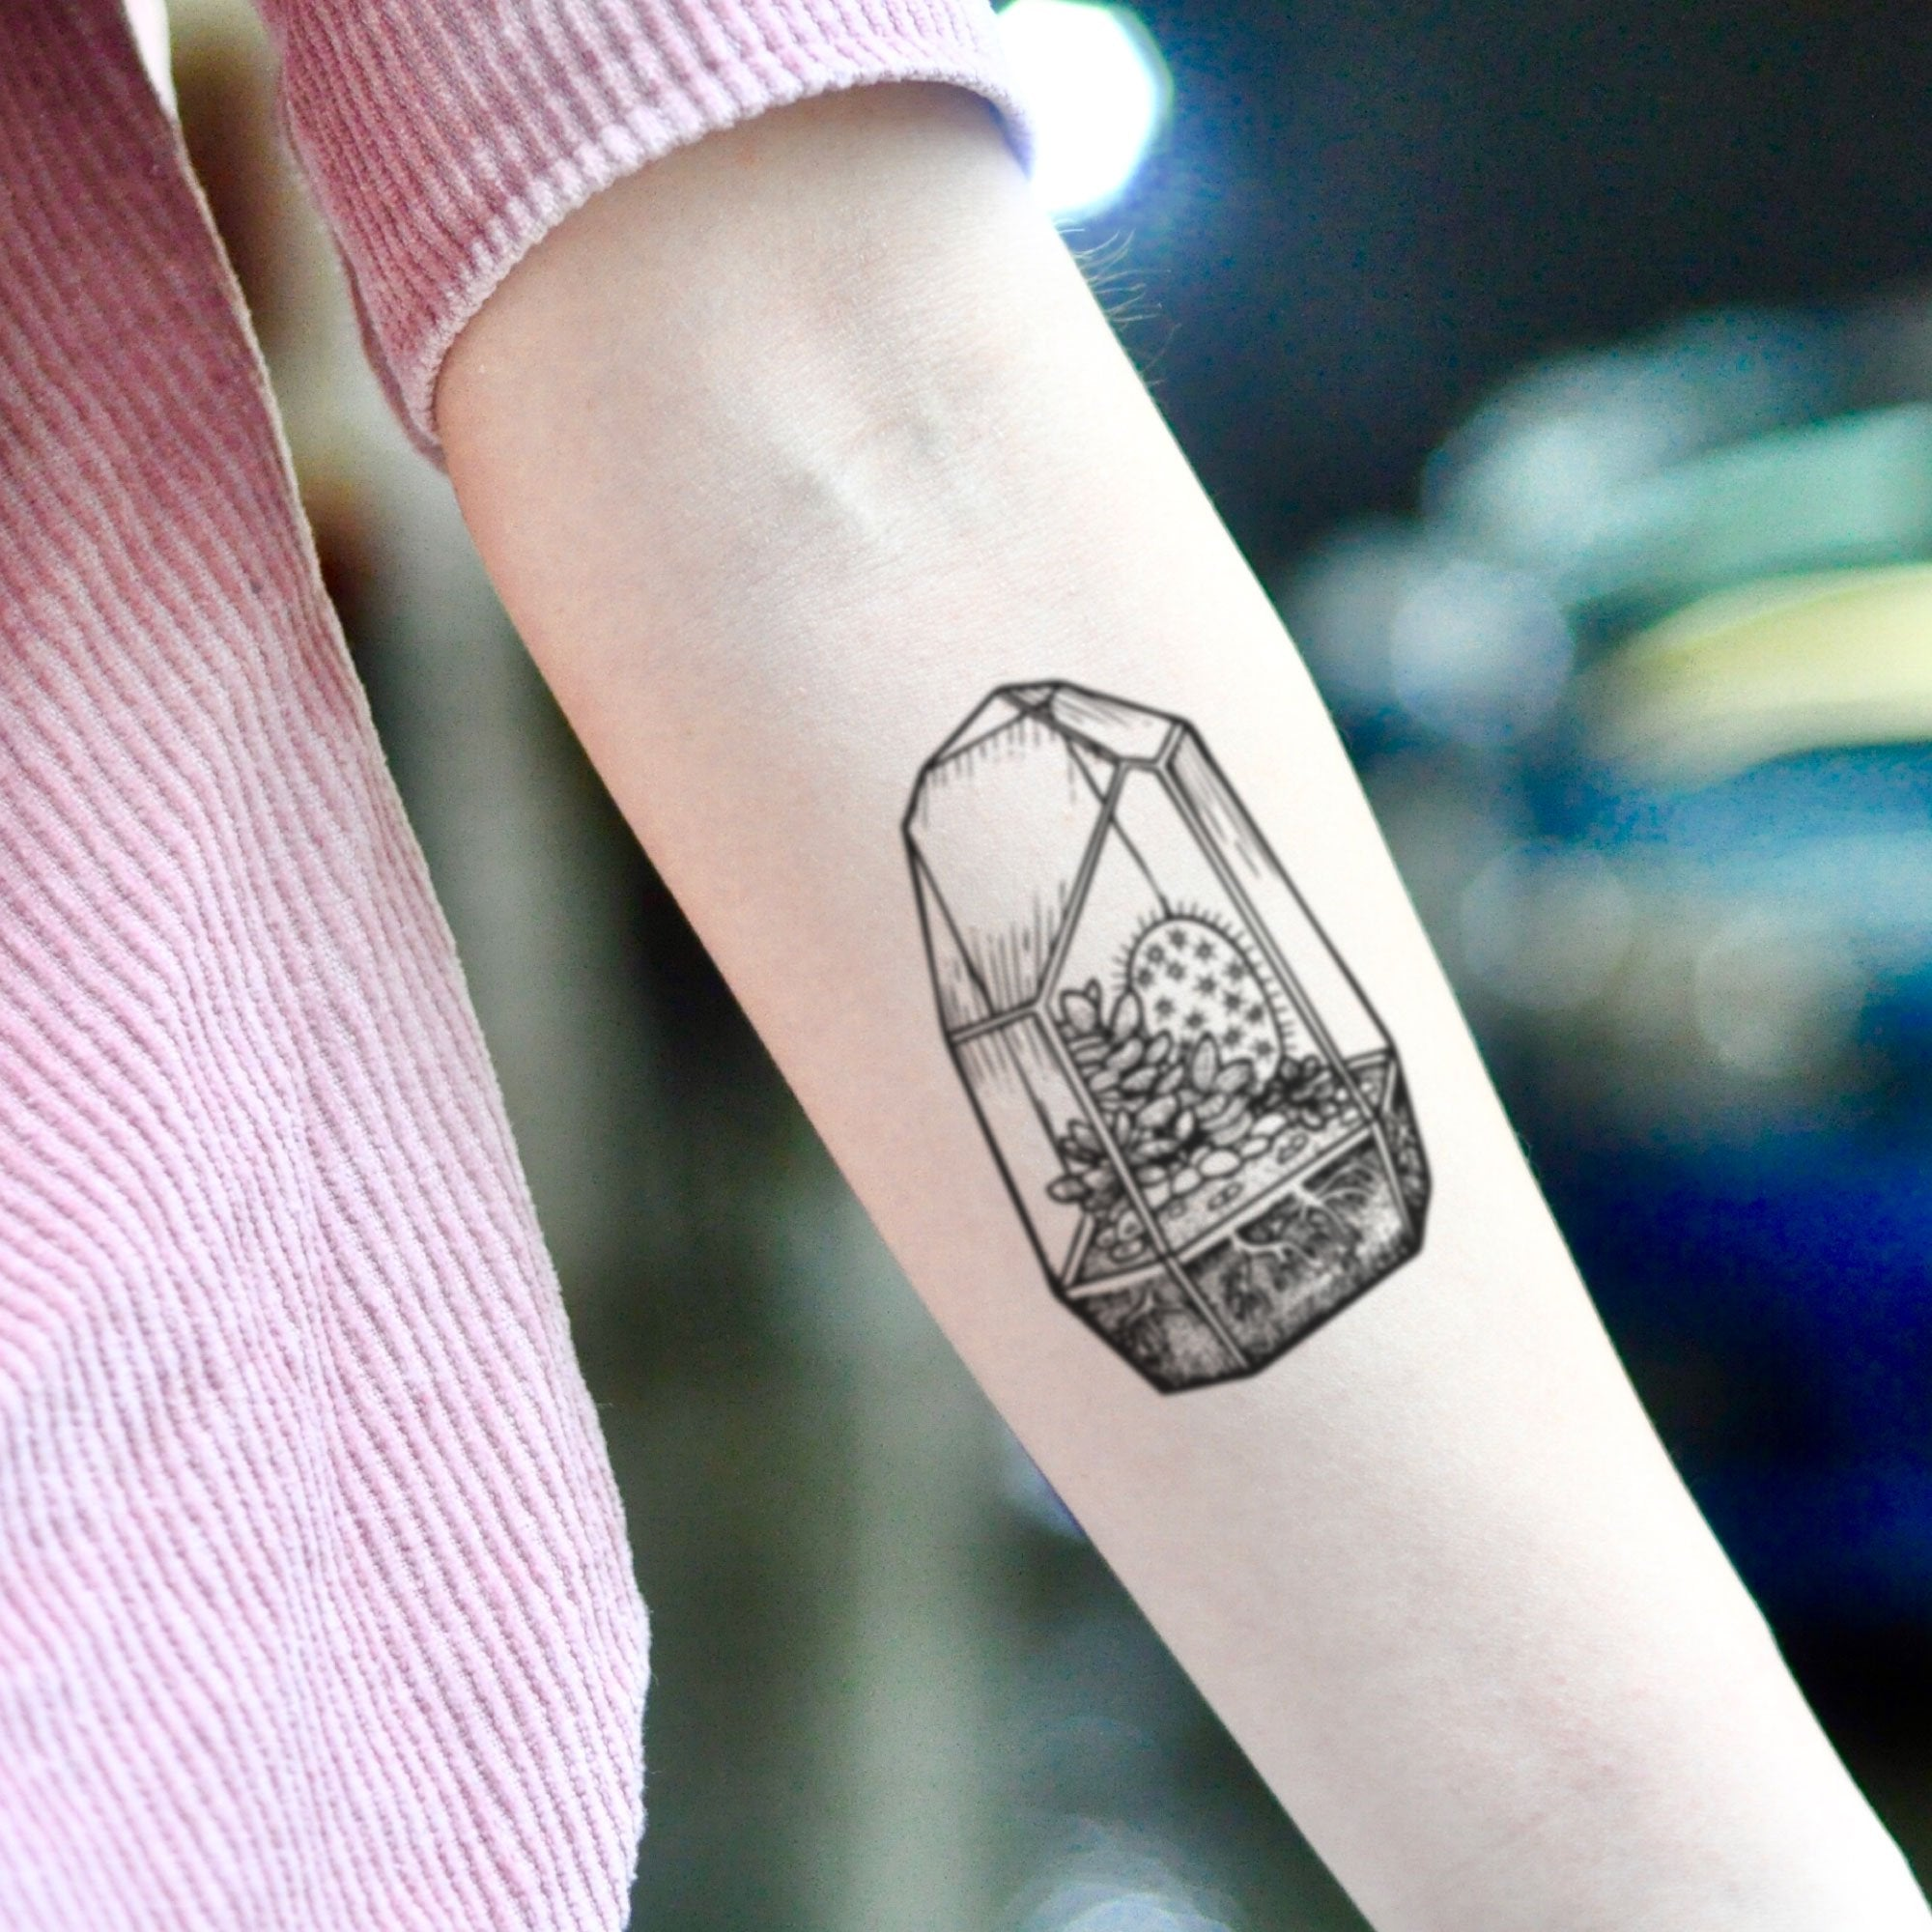 Terrarium Temporary Tattoo Sticker Ohmytat